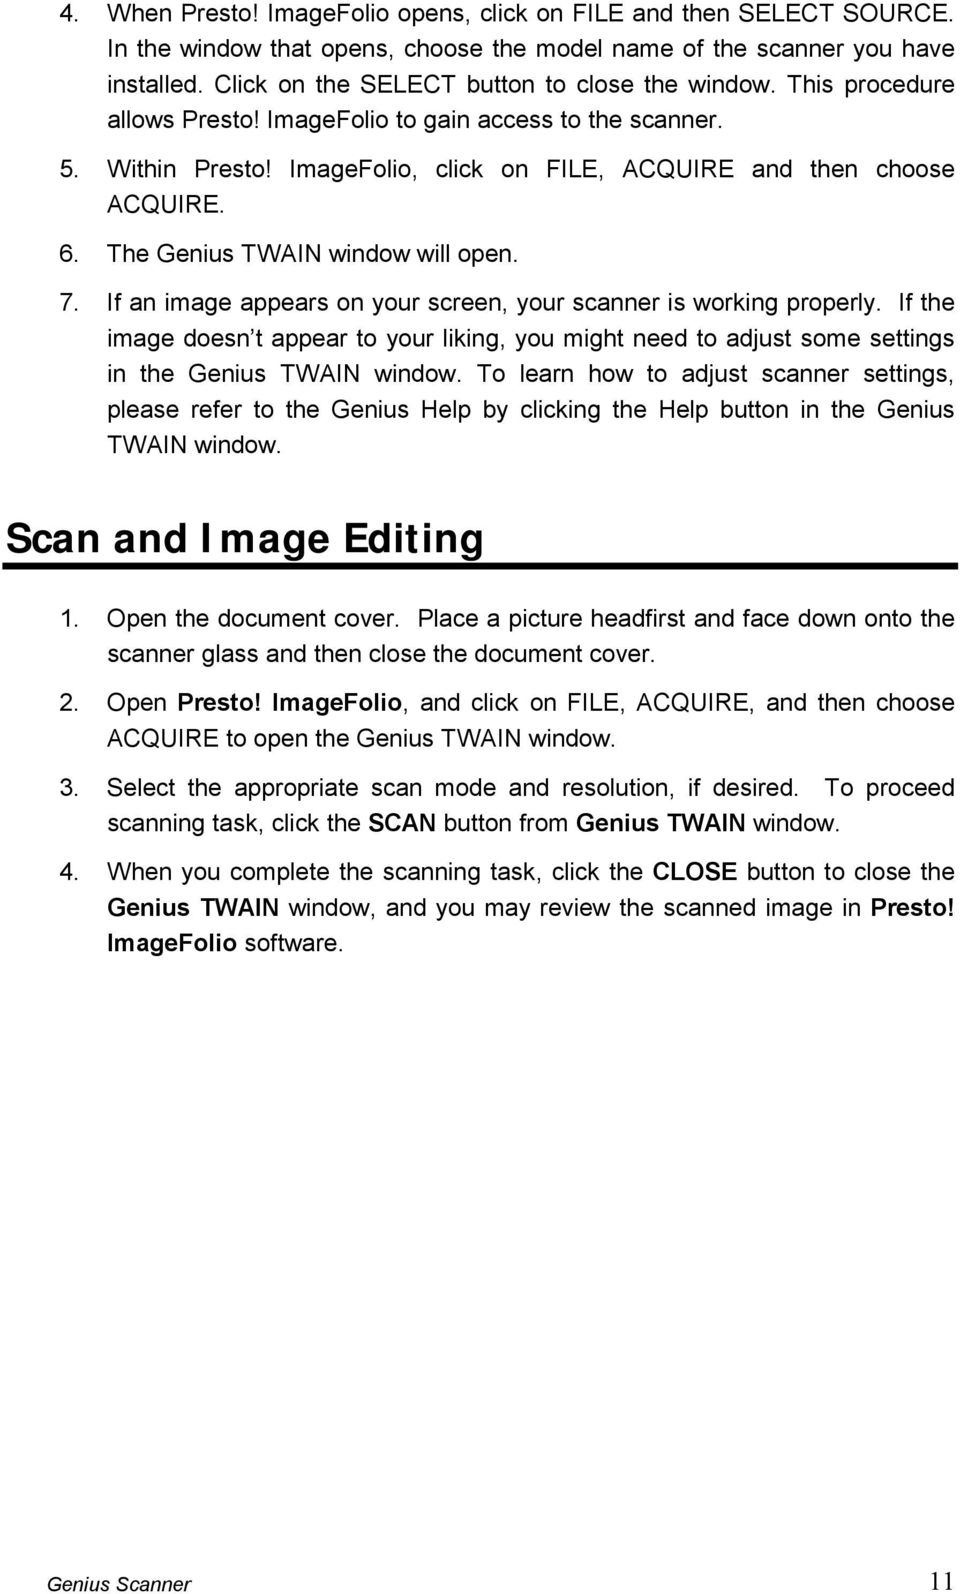 The Genius TWAIN window will open. 7. If an image appears on your screen, your scanner is working properly.